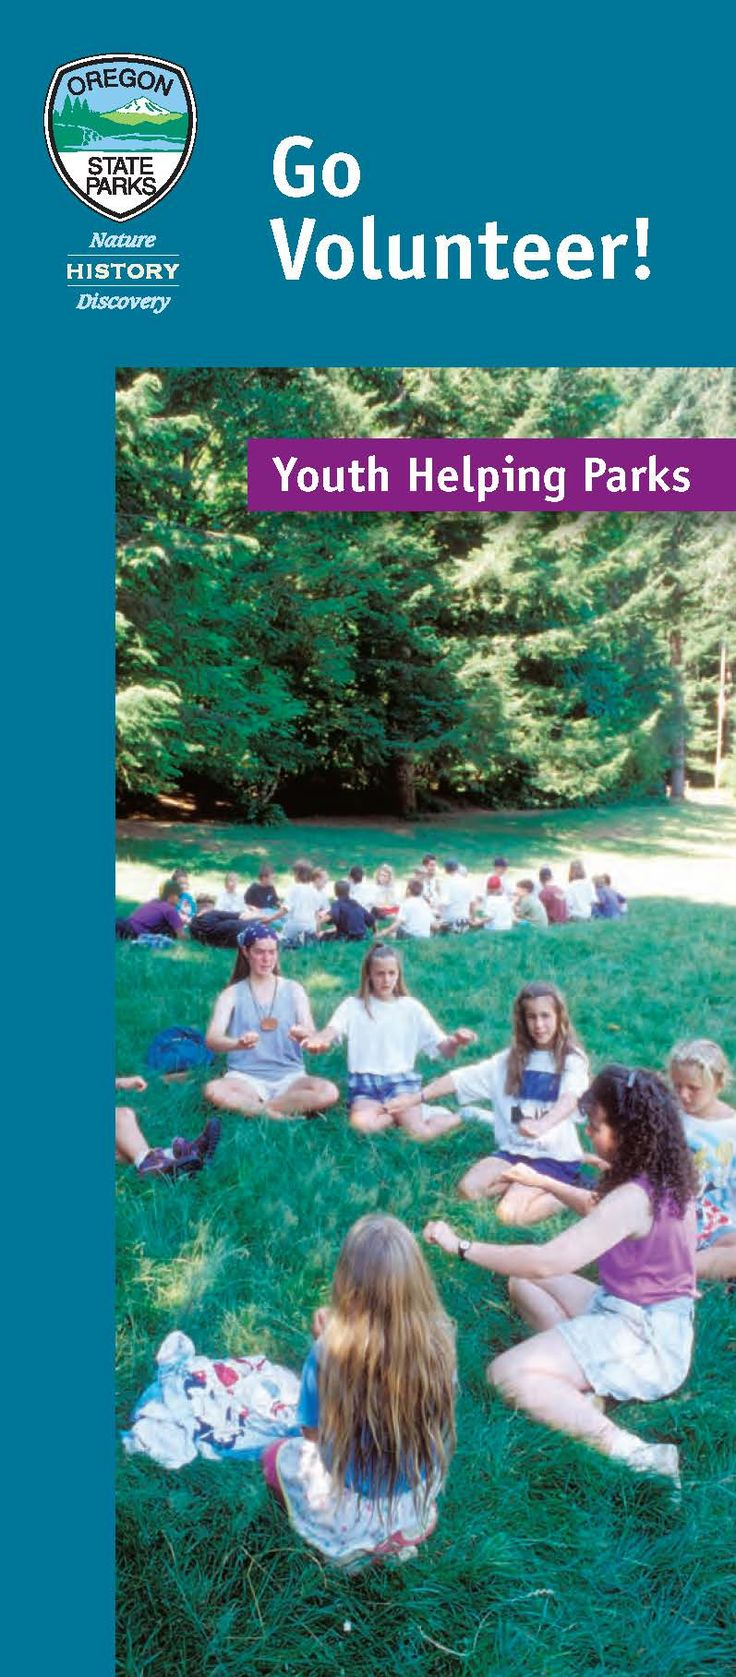 Go volunteer! Youth helping parks, by the Oregon State Parks and Recreation Department